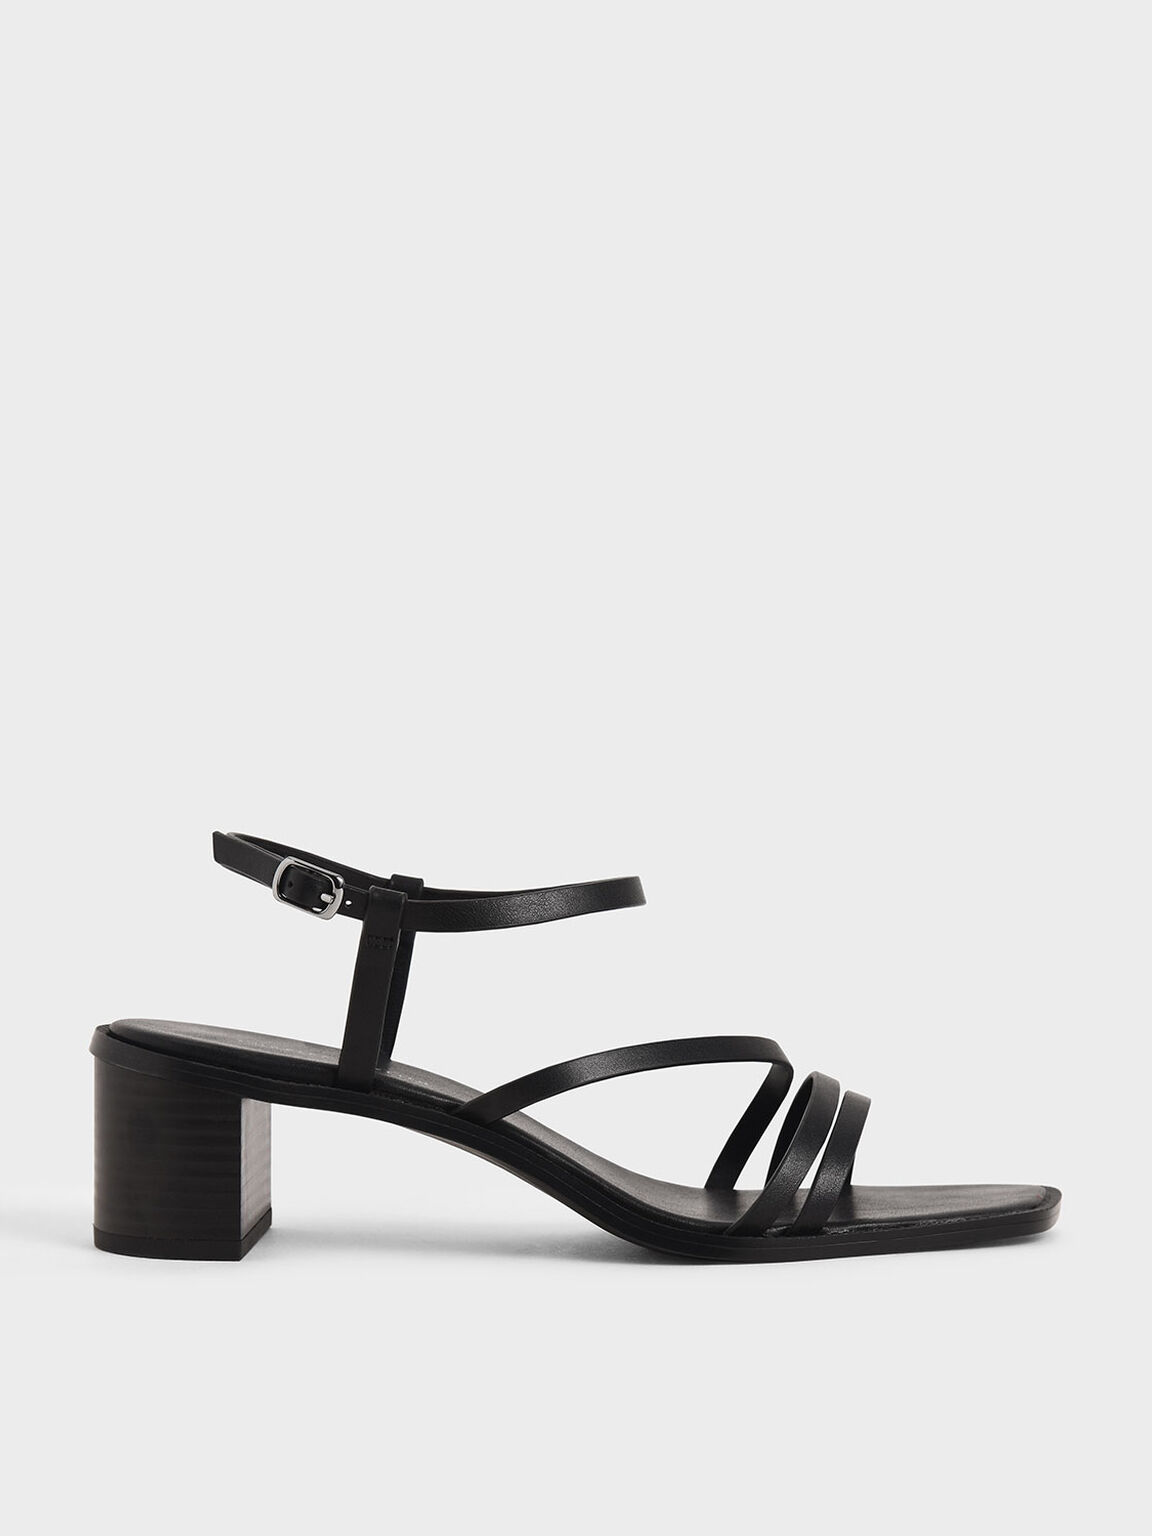 Strappy Open Toe Heeled Sandals, Black, hi-res